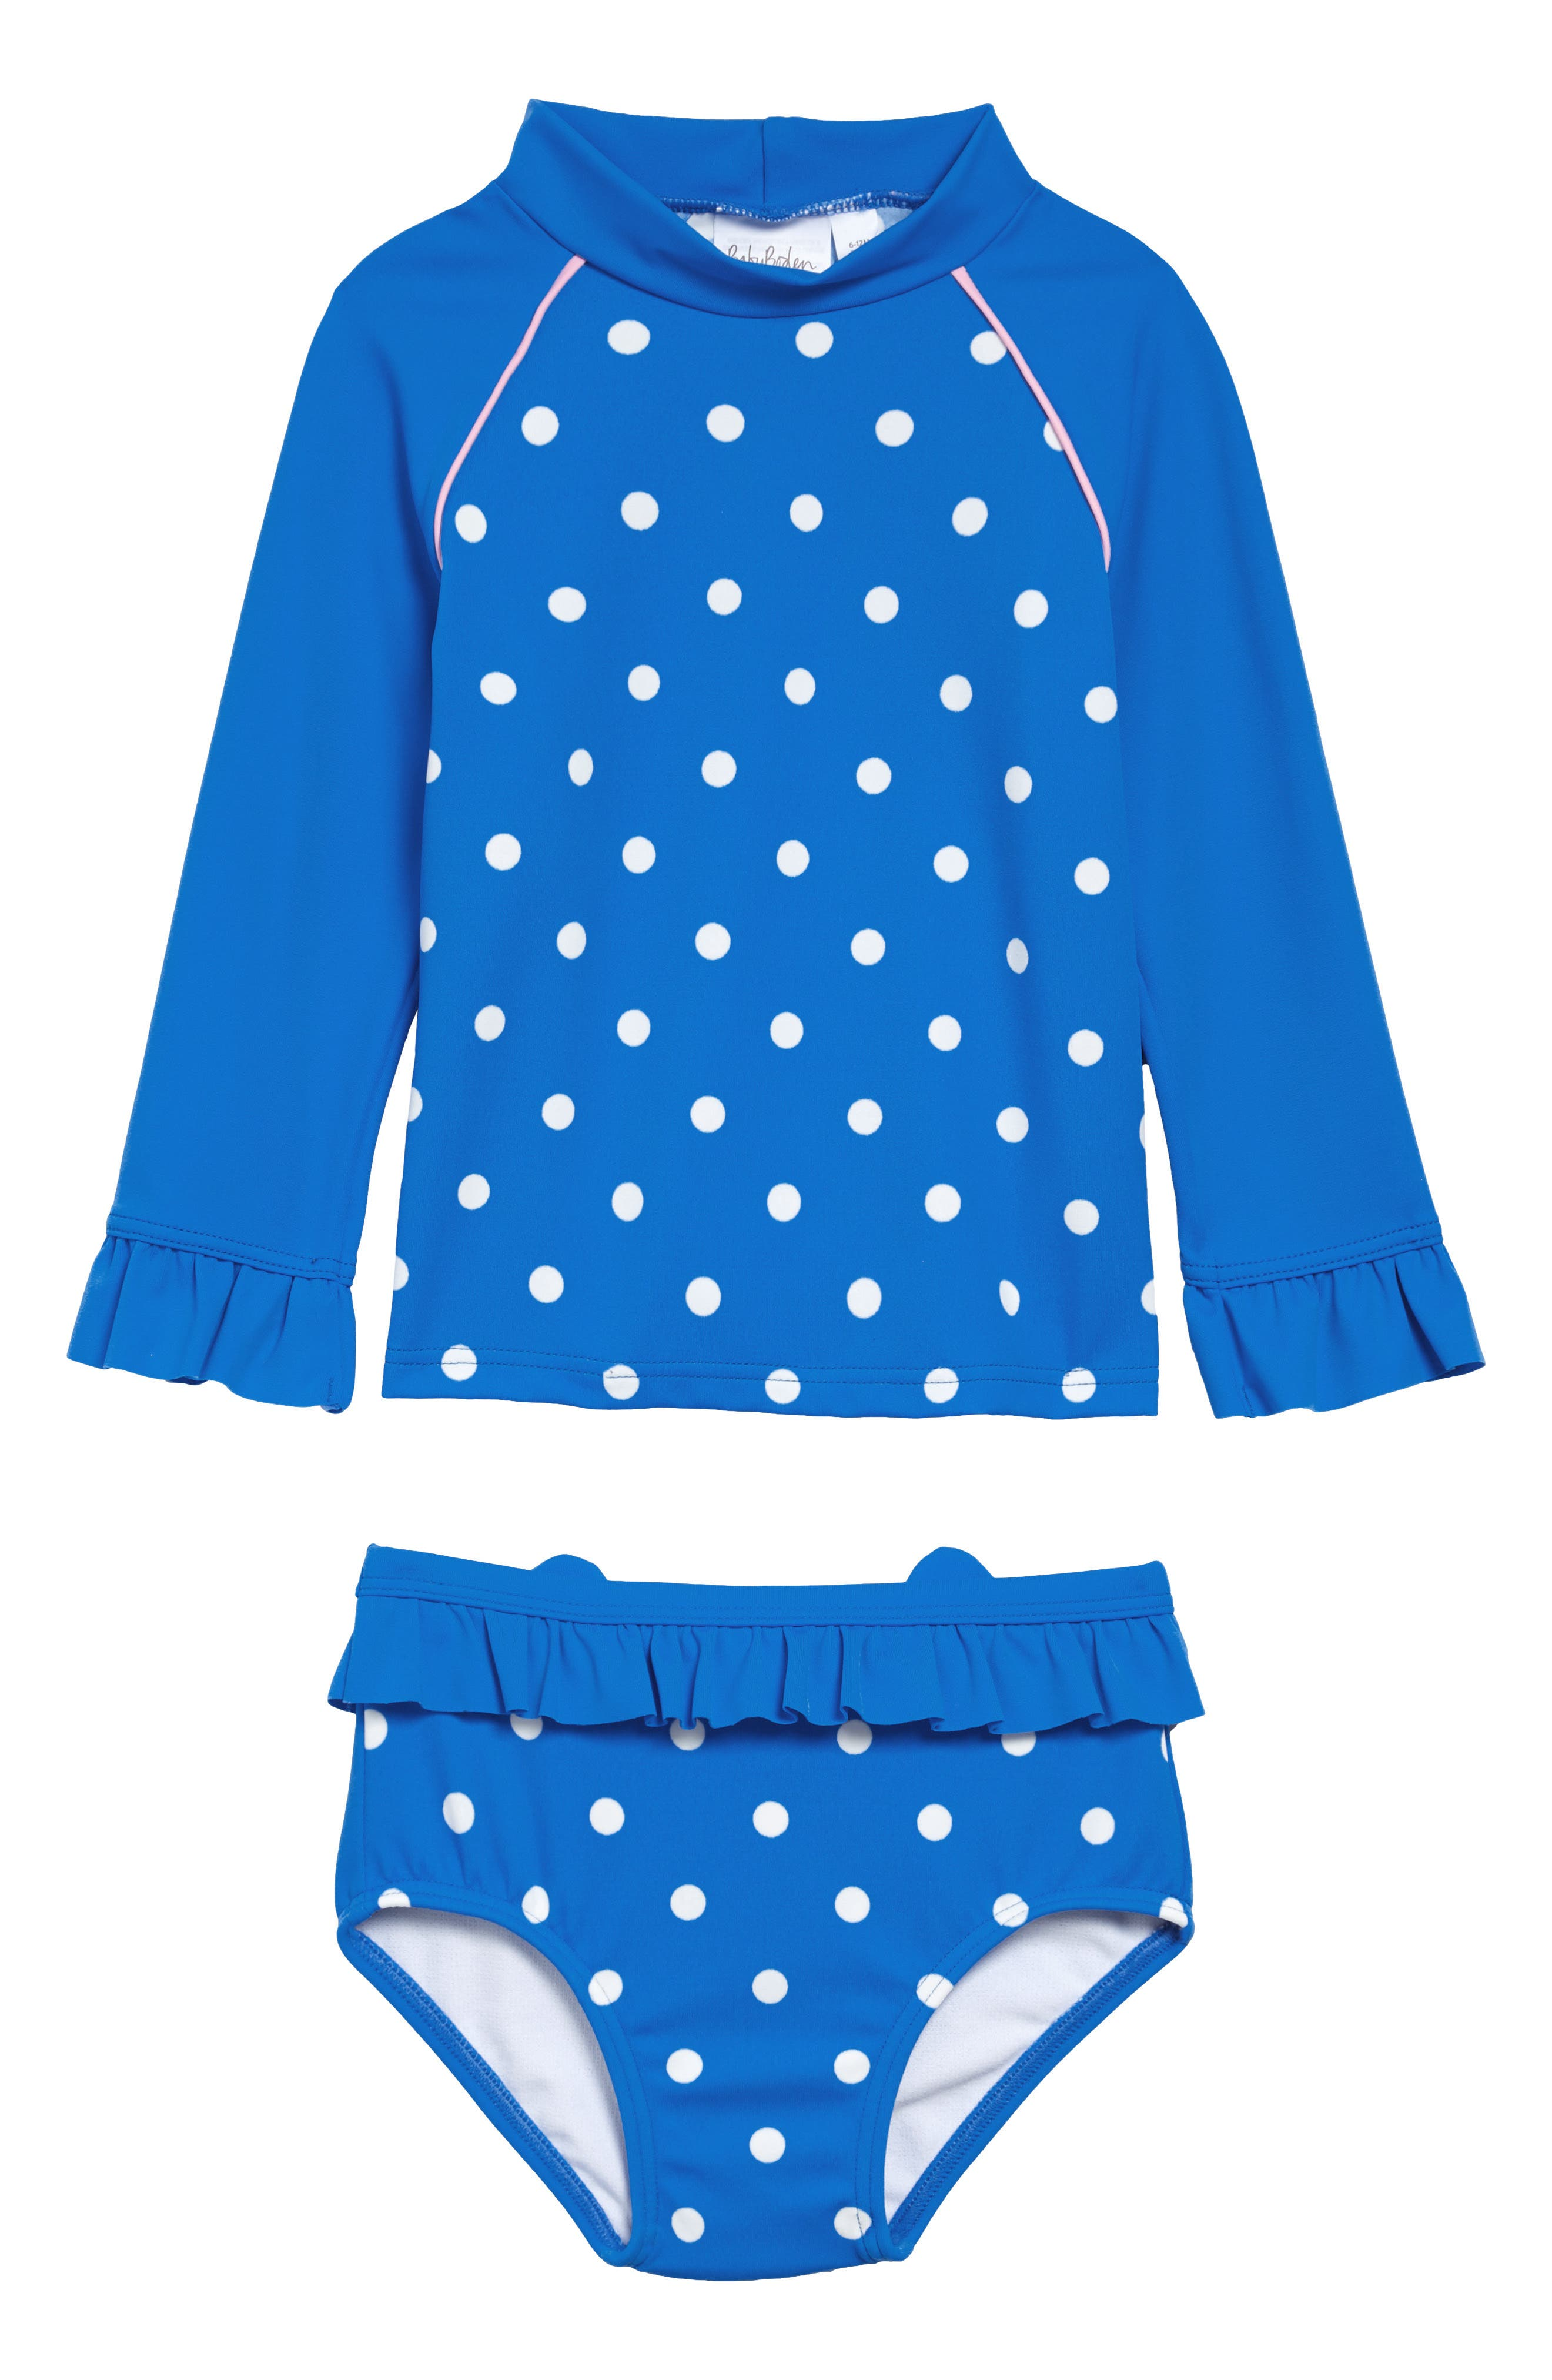 Protect your little one from the surf, sand and sun with this two-piece swimsuit featuring a long-sleeve rashguard top and cat-themed swim bottoms. Style Name: Mini Boden Cat Two-Piece Rashguard Swim Suit (Toddler). Style Number: 6042738. Available in stores.